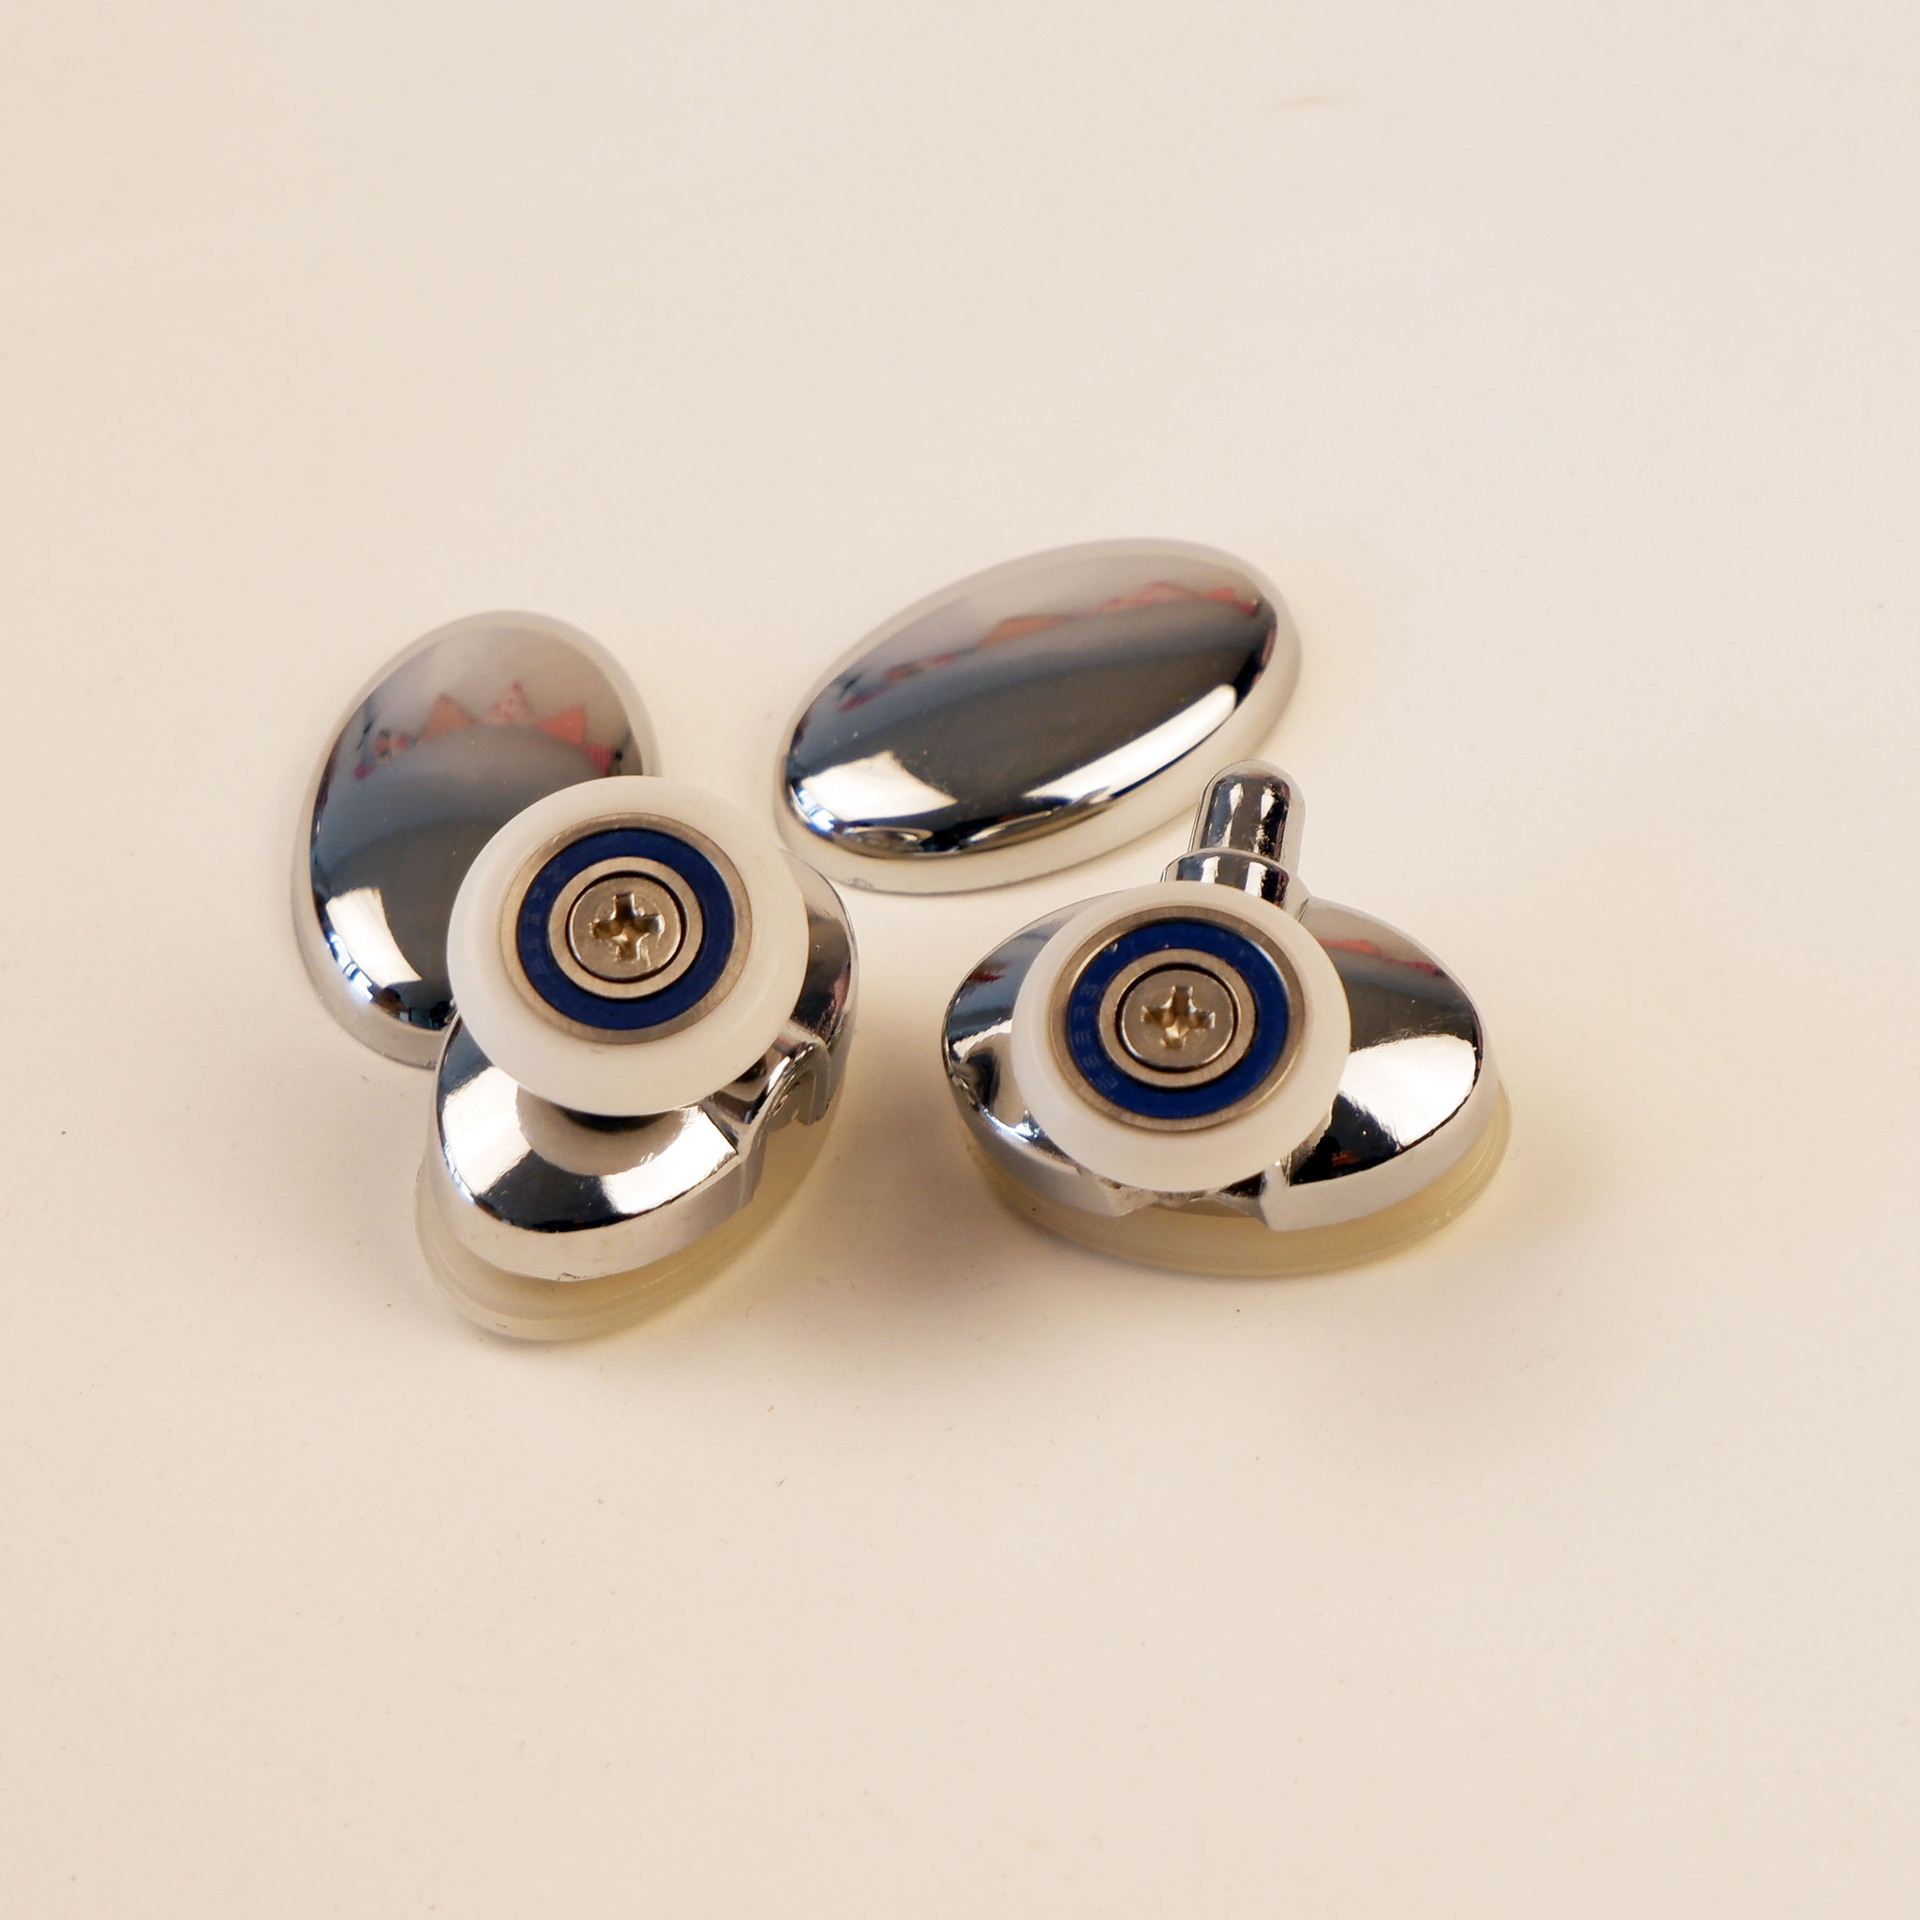 2pcs bathroom zinc alloy arc top bottom pulley wheel for glass door crane shower room guide roller accessory shower room pulley